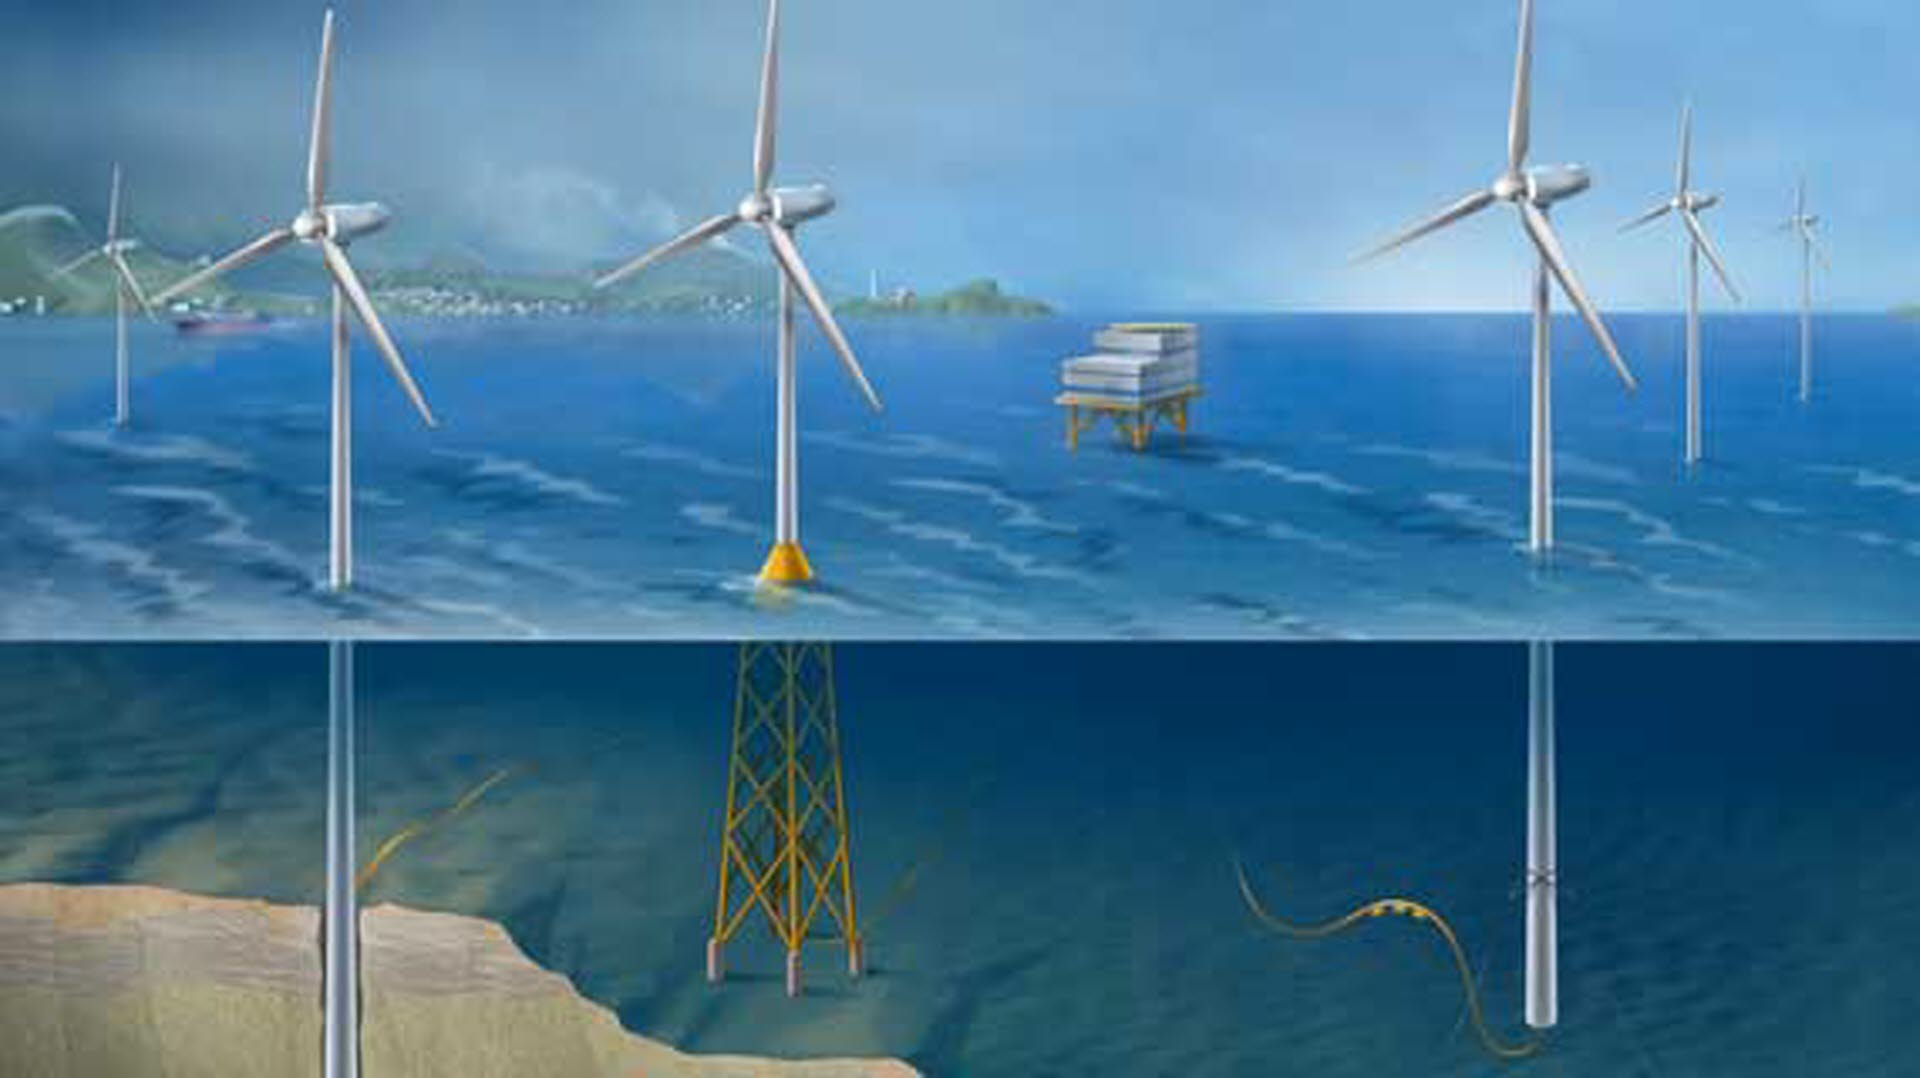 Croatia could get 20% of its energy from the Adriatic